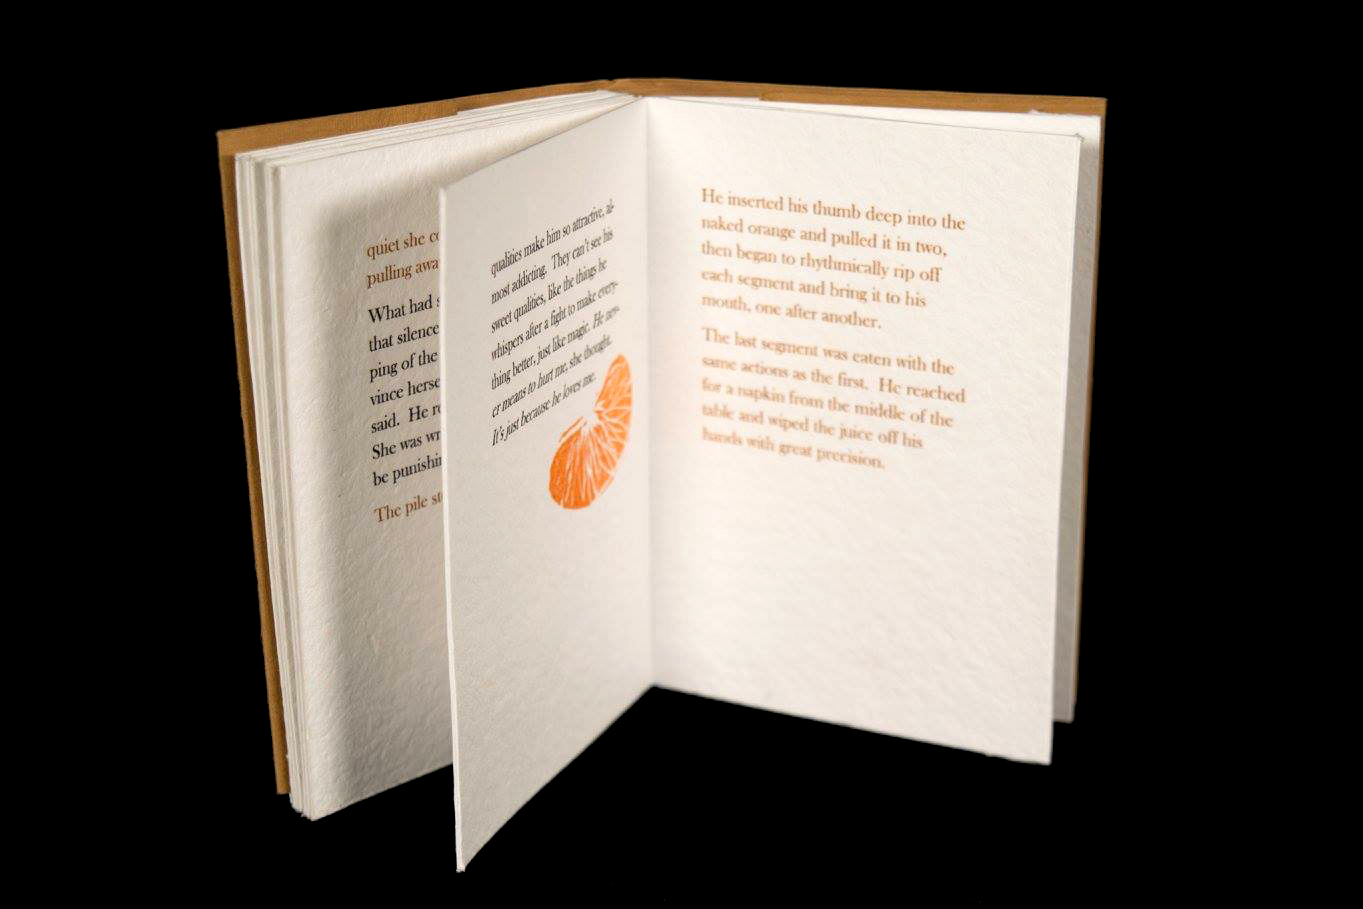 inside of book, with black and sepia text and small orange segment print